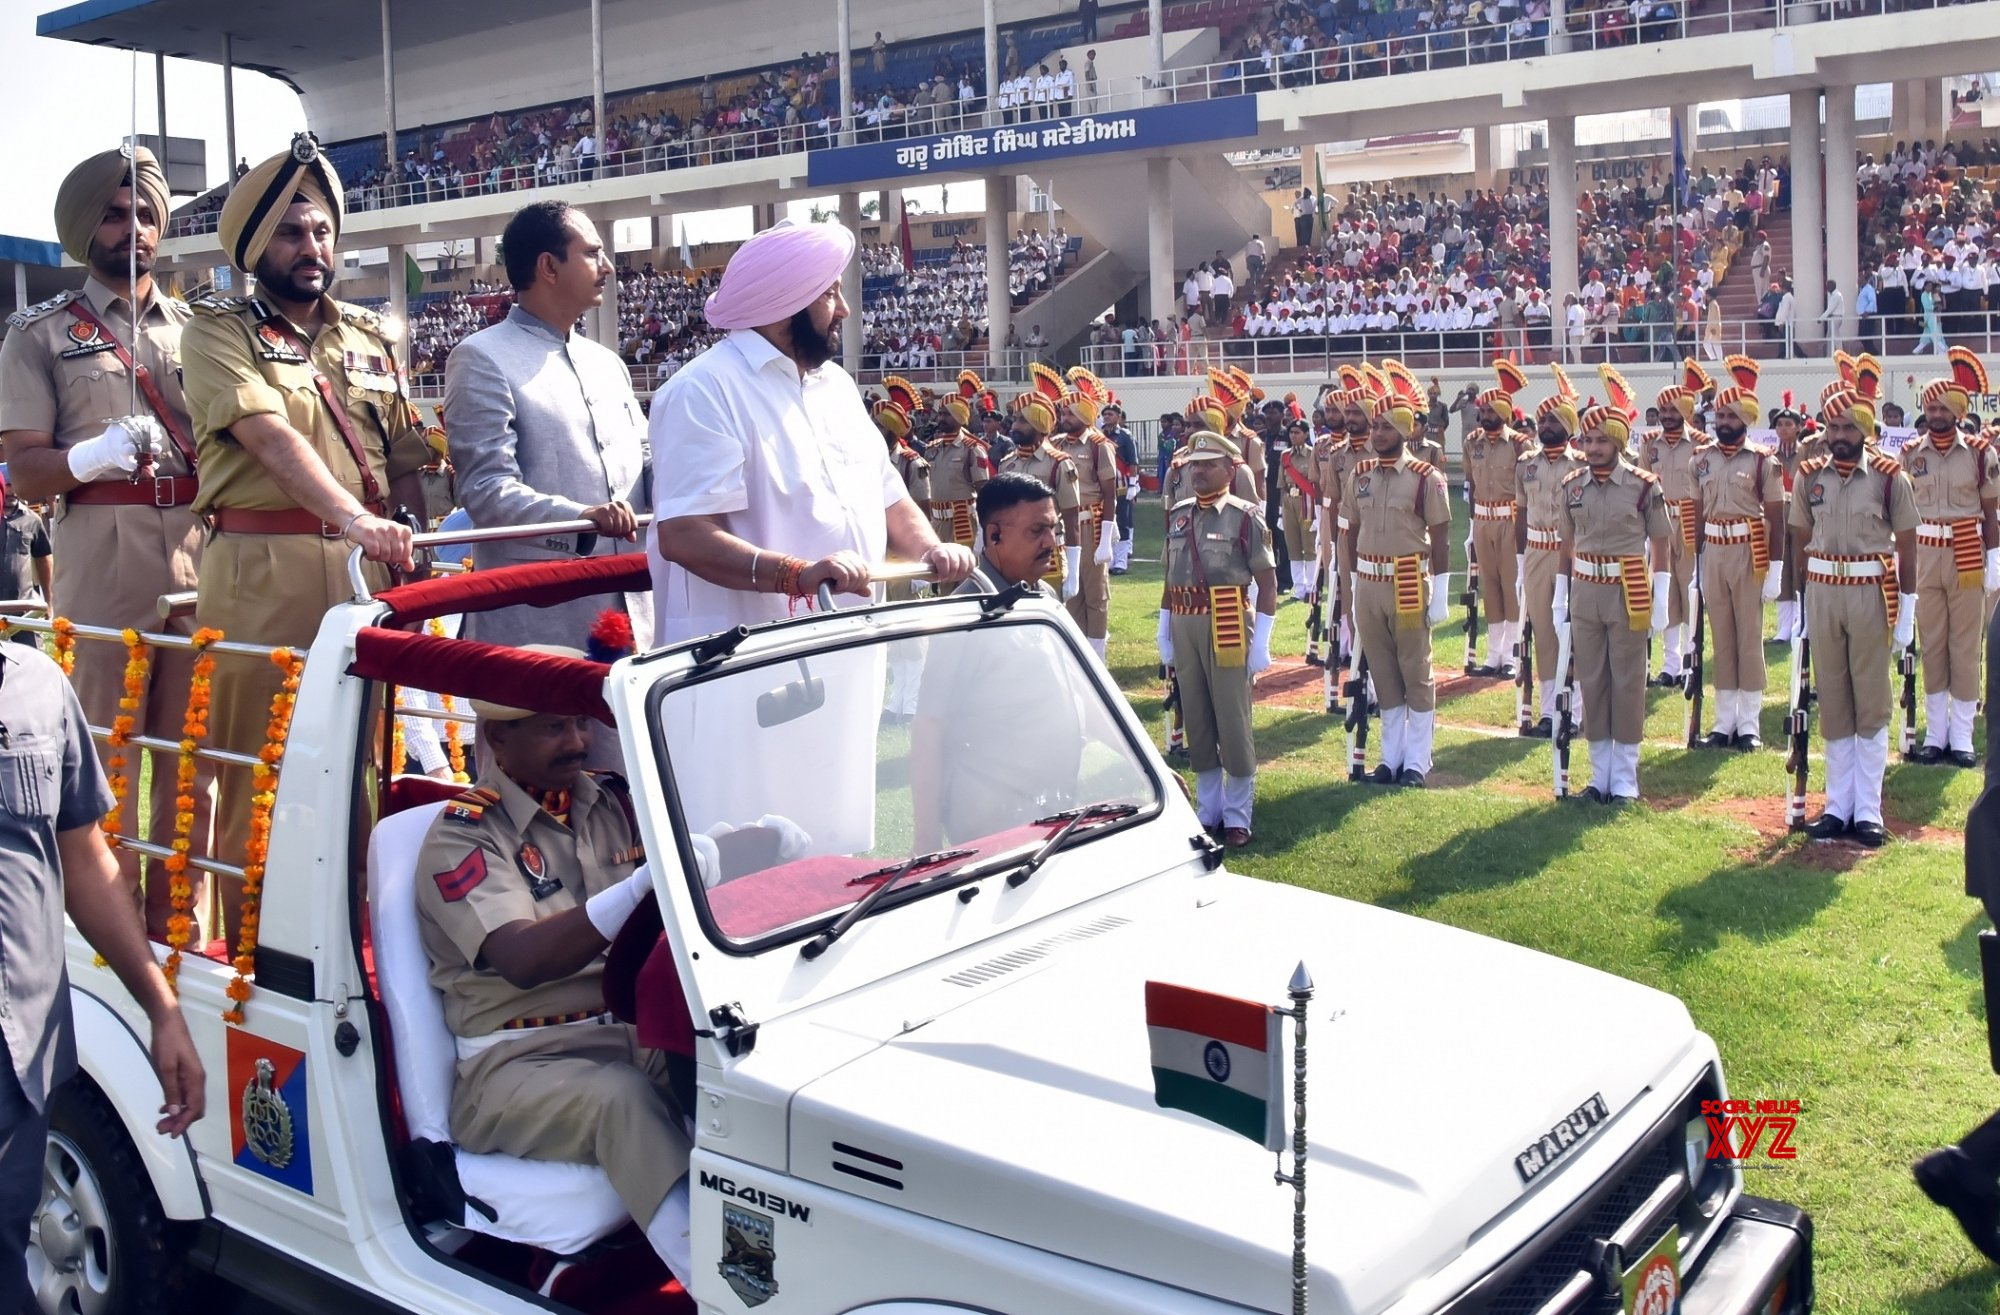 Punjab CM urges people to join hands against inimical forces